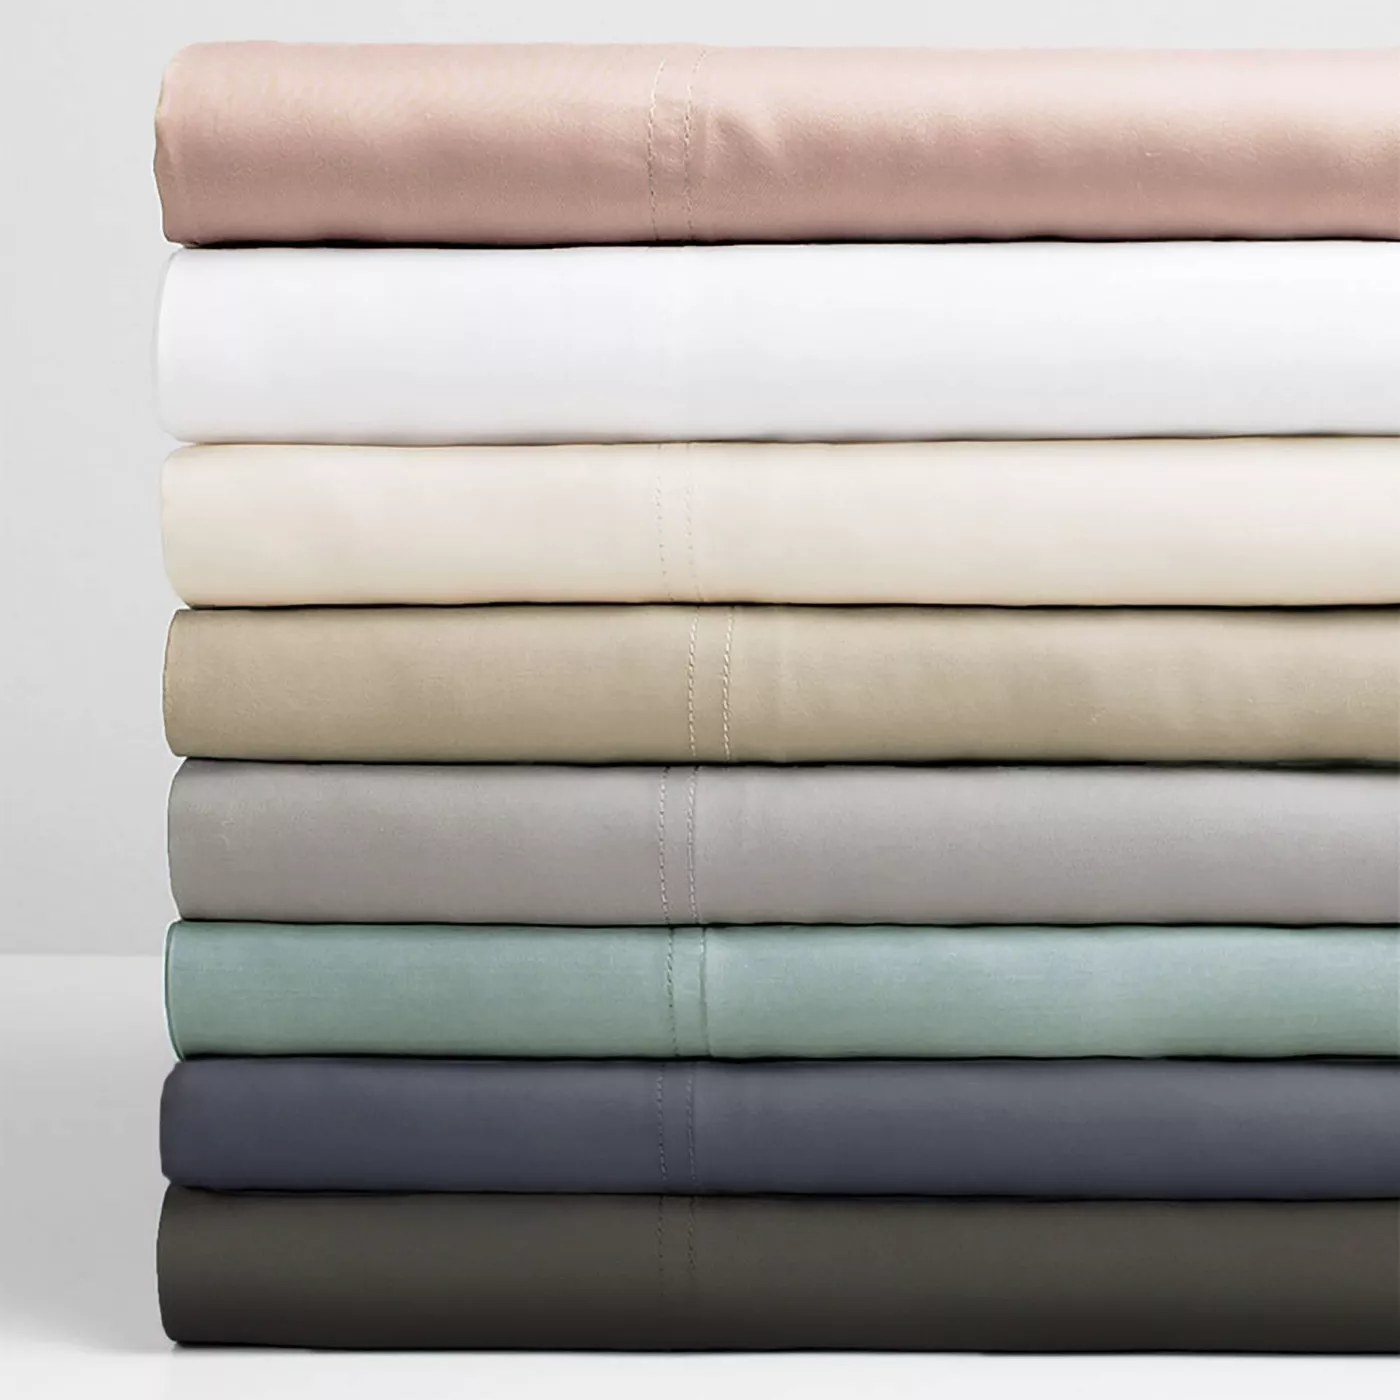 The sheet set in eight colors